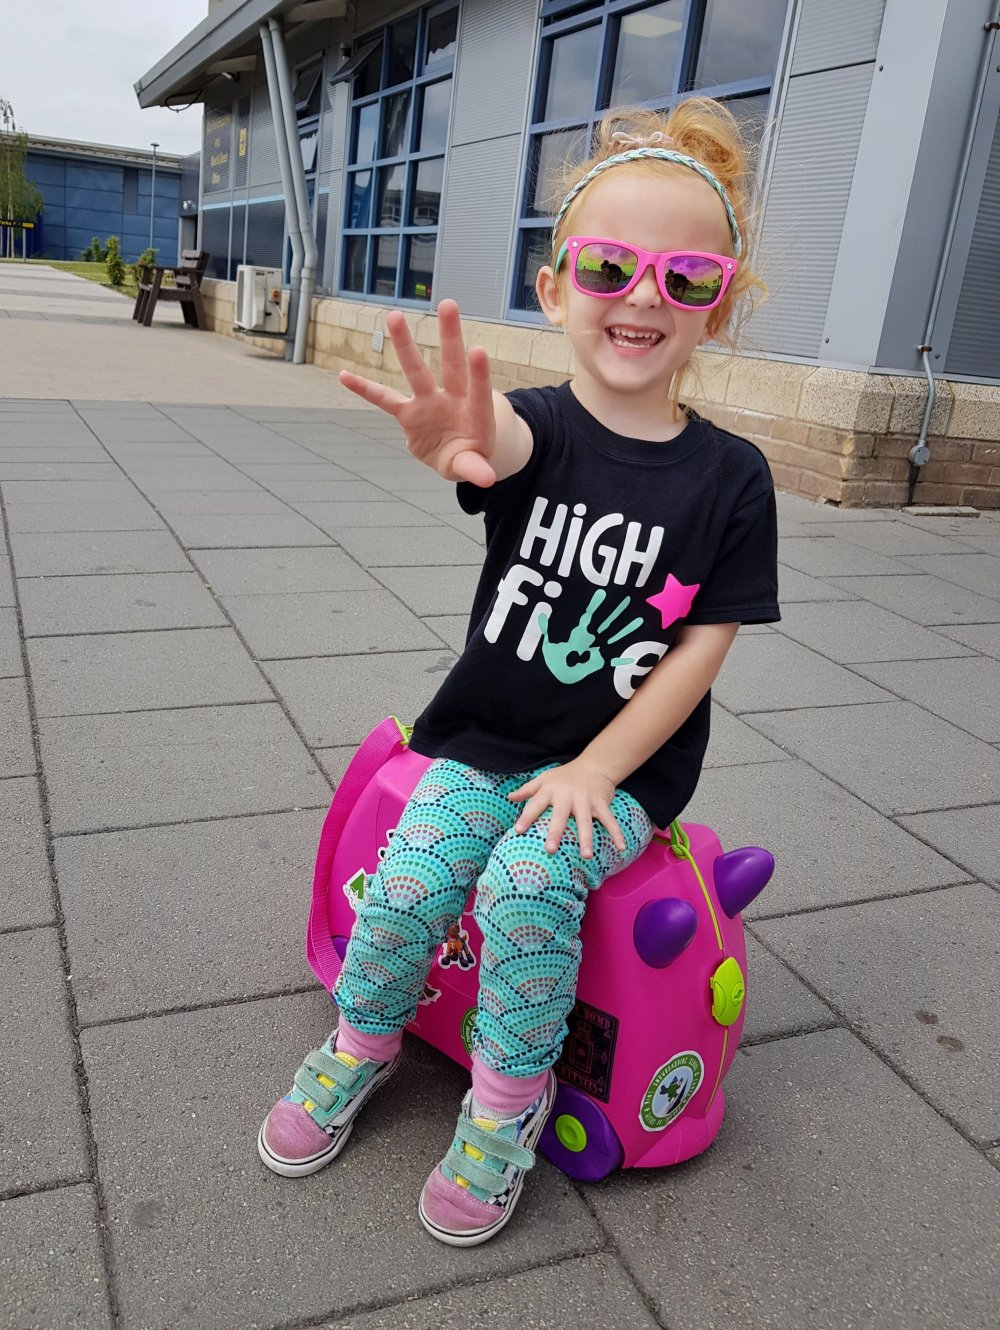 High 5 for the Trunki